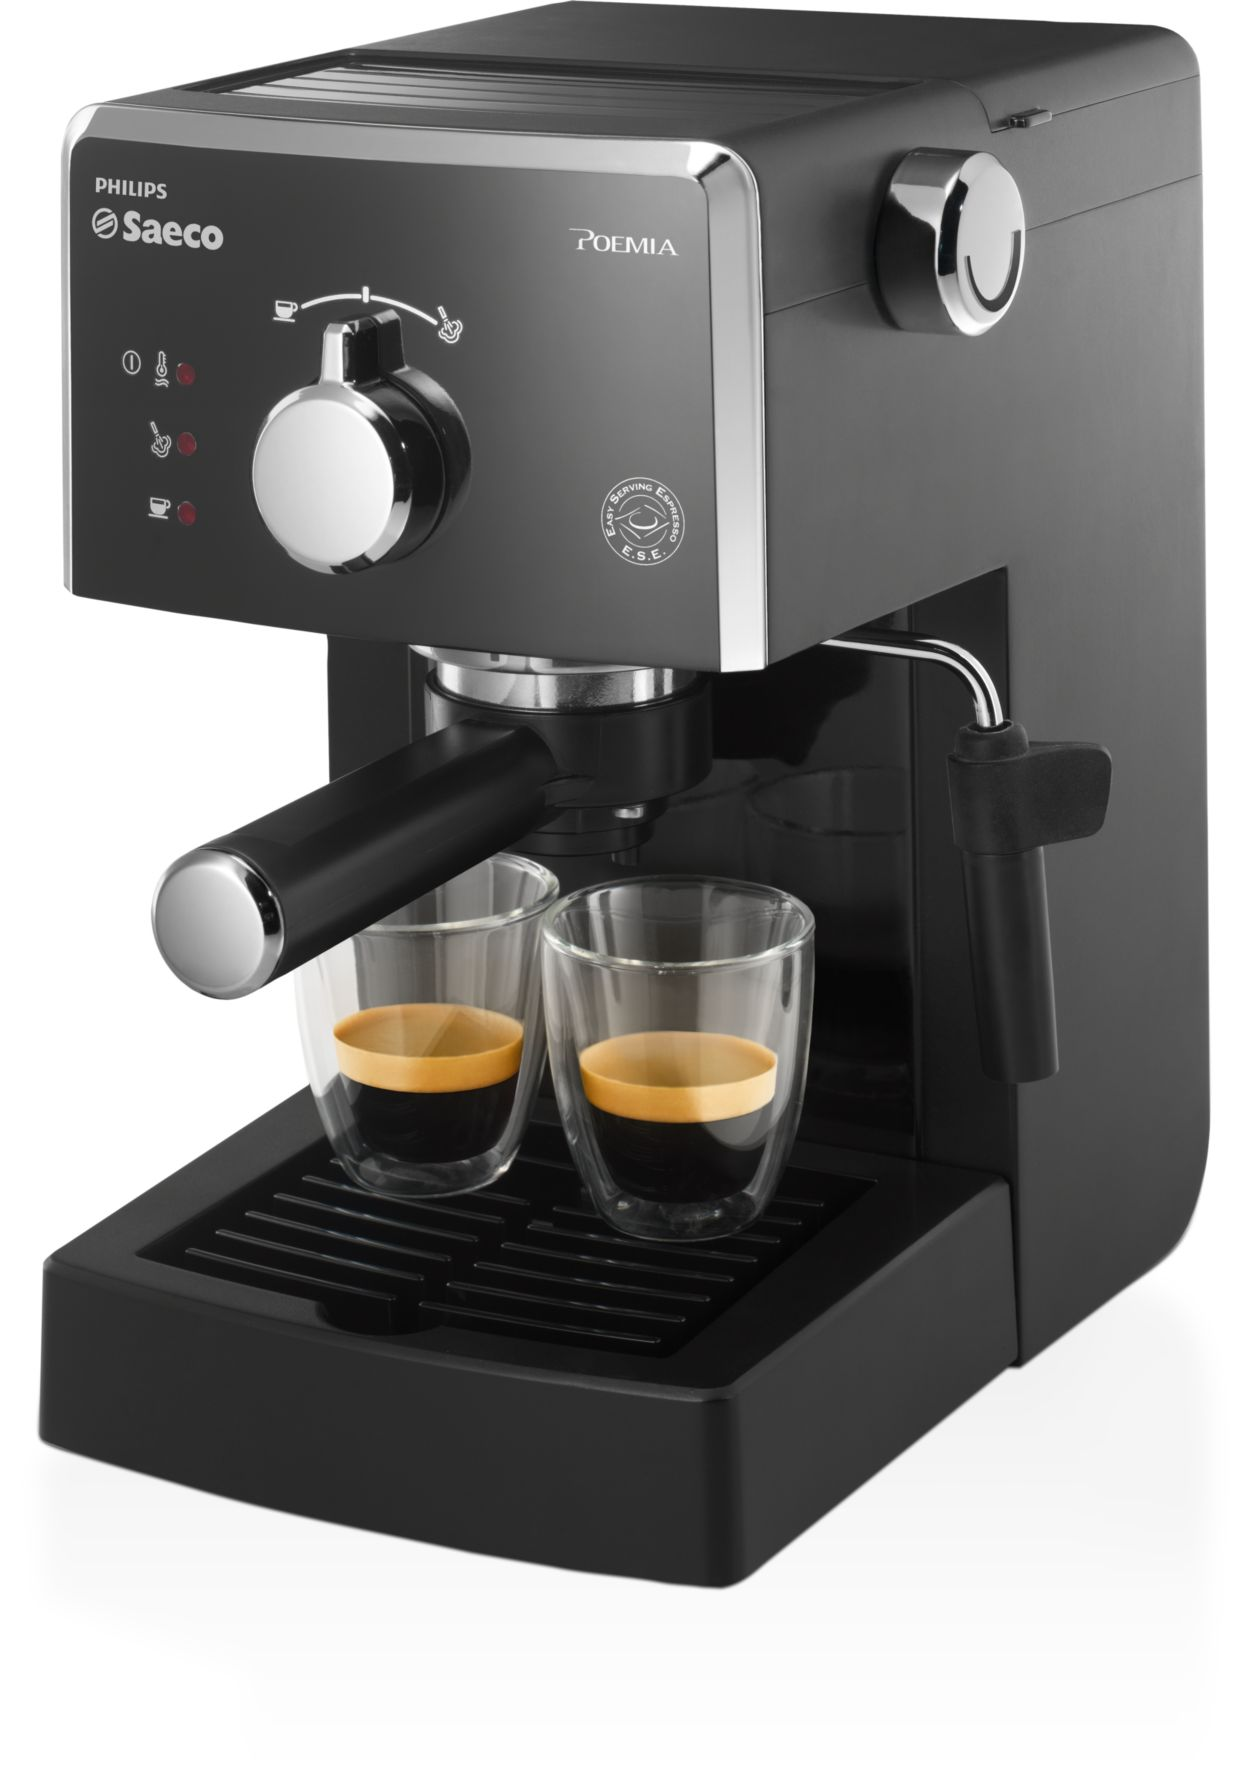 Saeco Coffee Maker Owner S Manual : Poemia Manual Espresso machine HD8323/01 Saeco